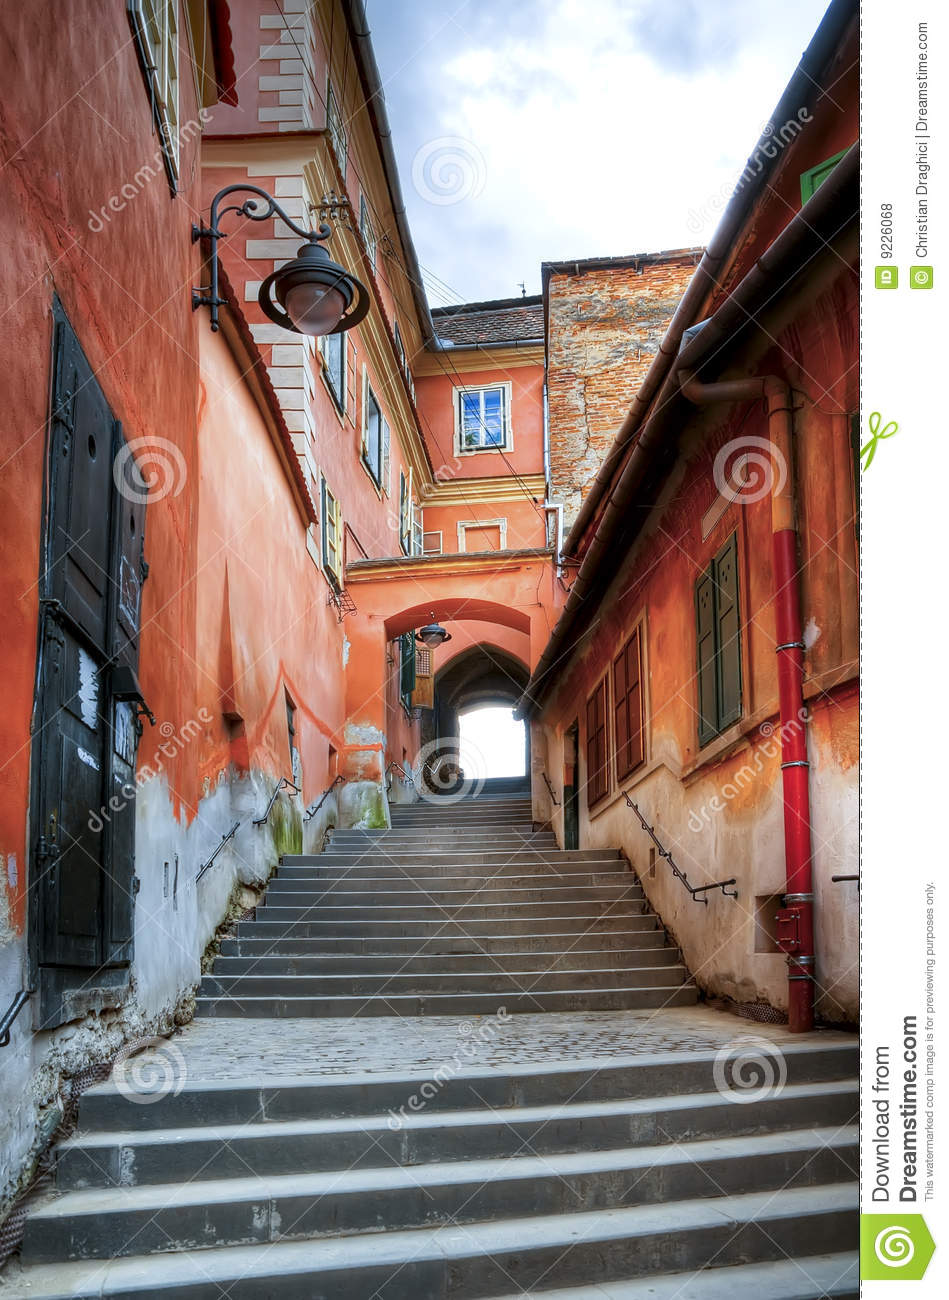 Narrow steps in sibiu stock photo. Image of ancient 75b0db8209e